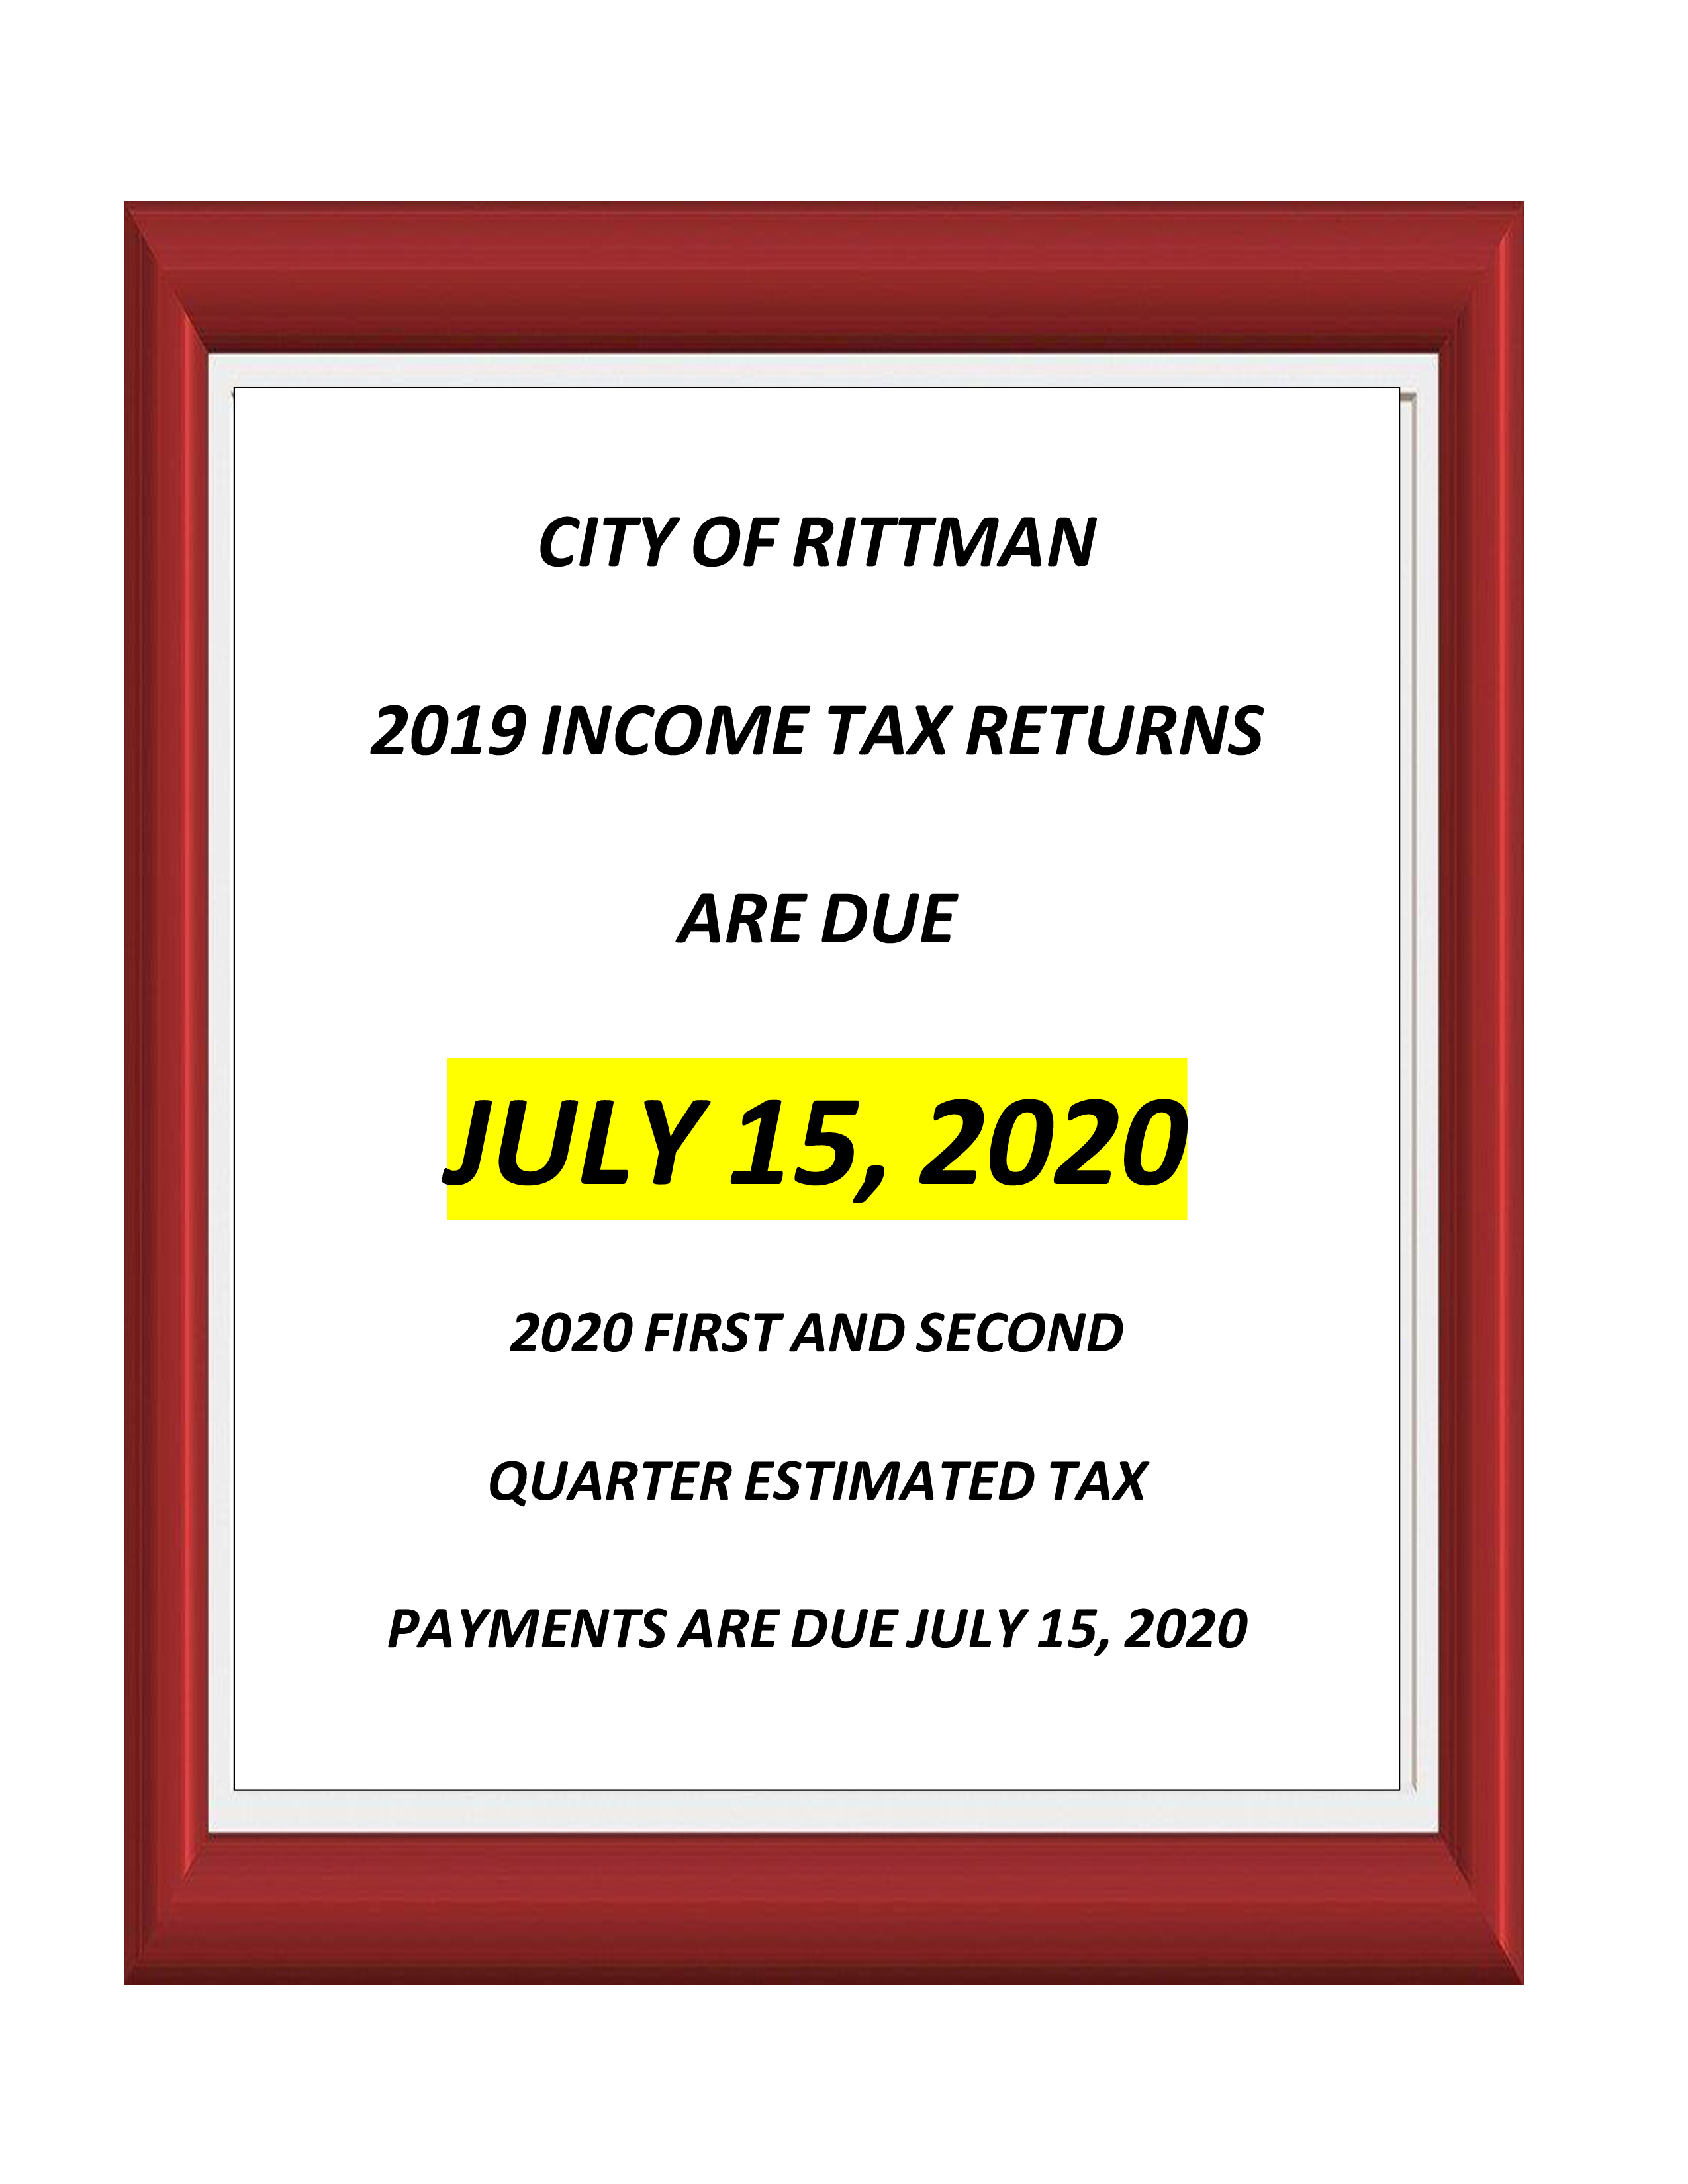 City of Rittman 2019 Tax Due Date July 15 2020